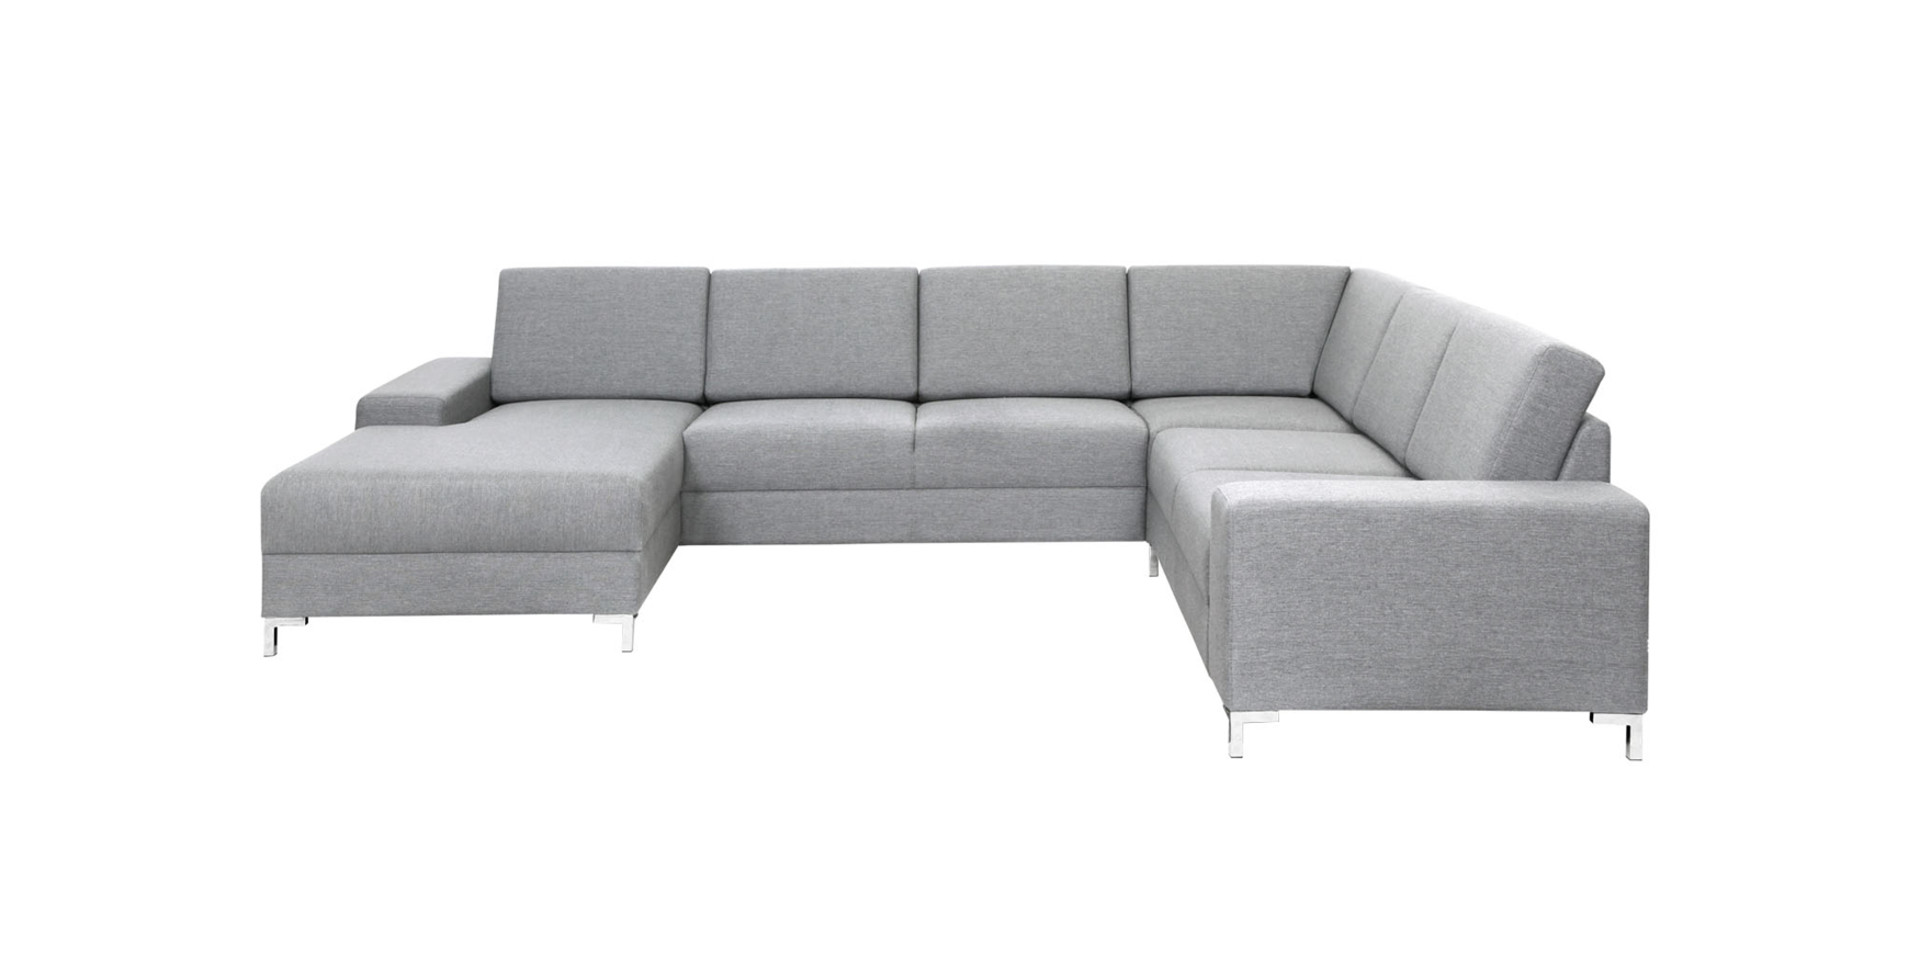 sits-anton-angle-set1_cavani18719_light_grey_1